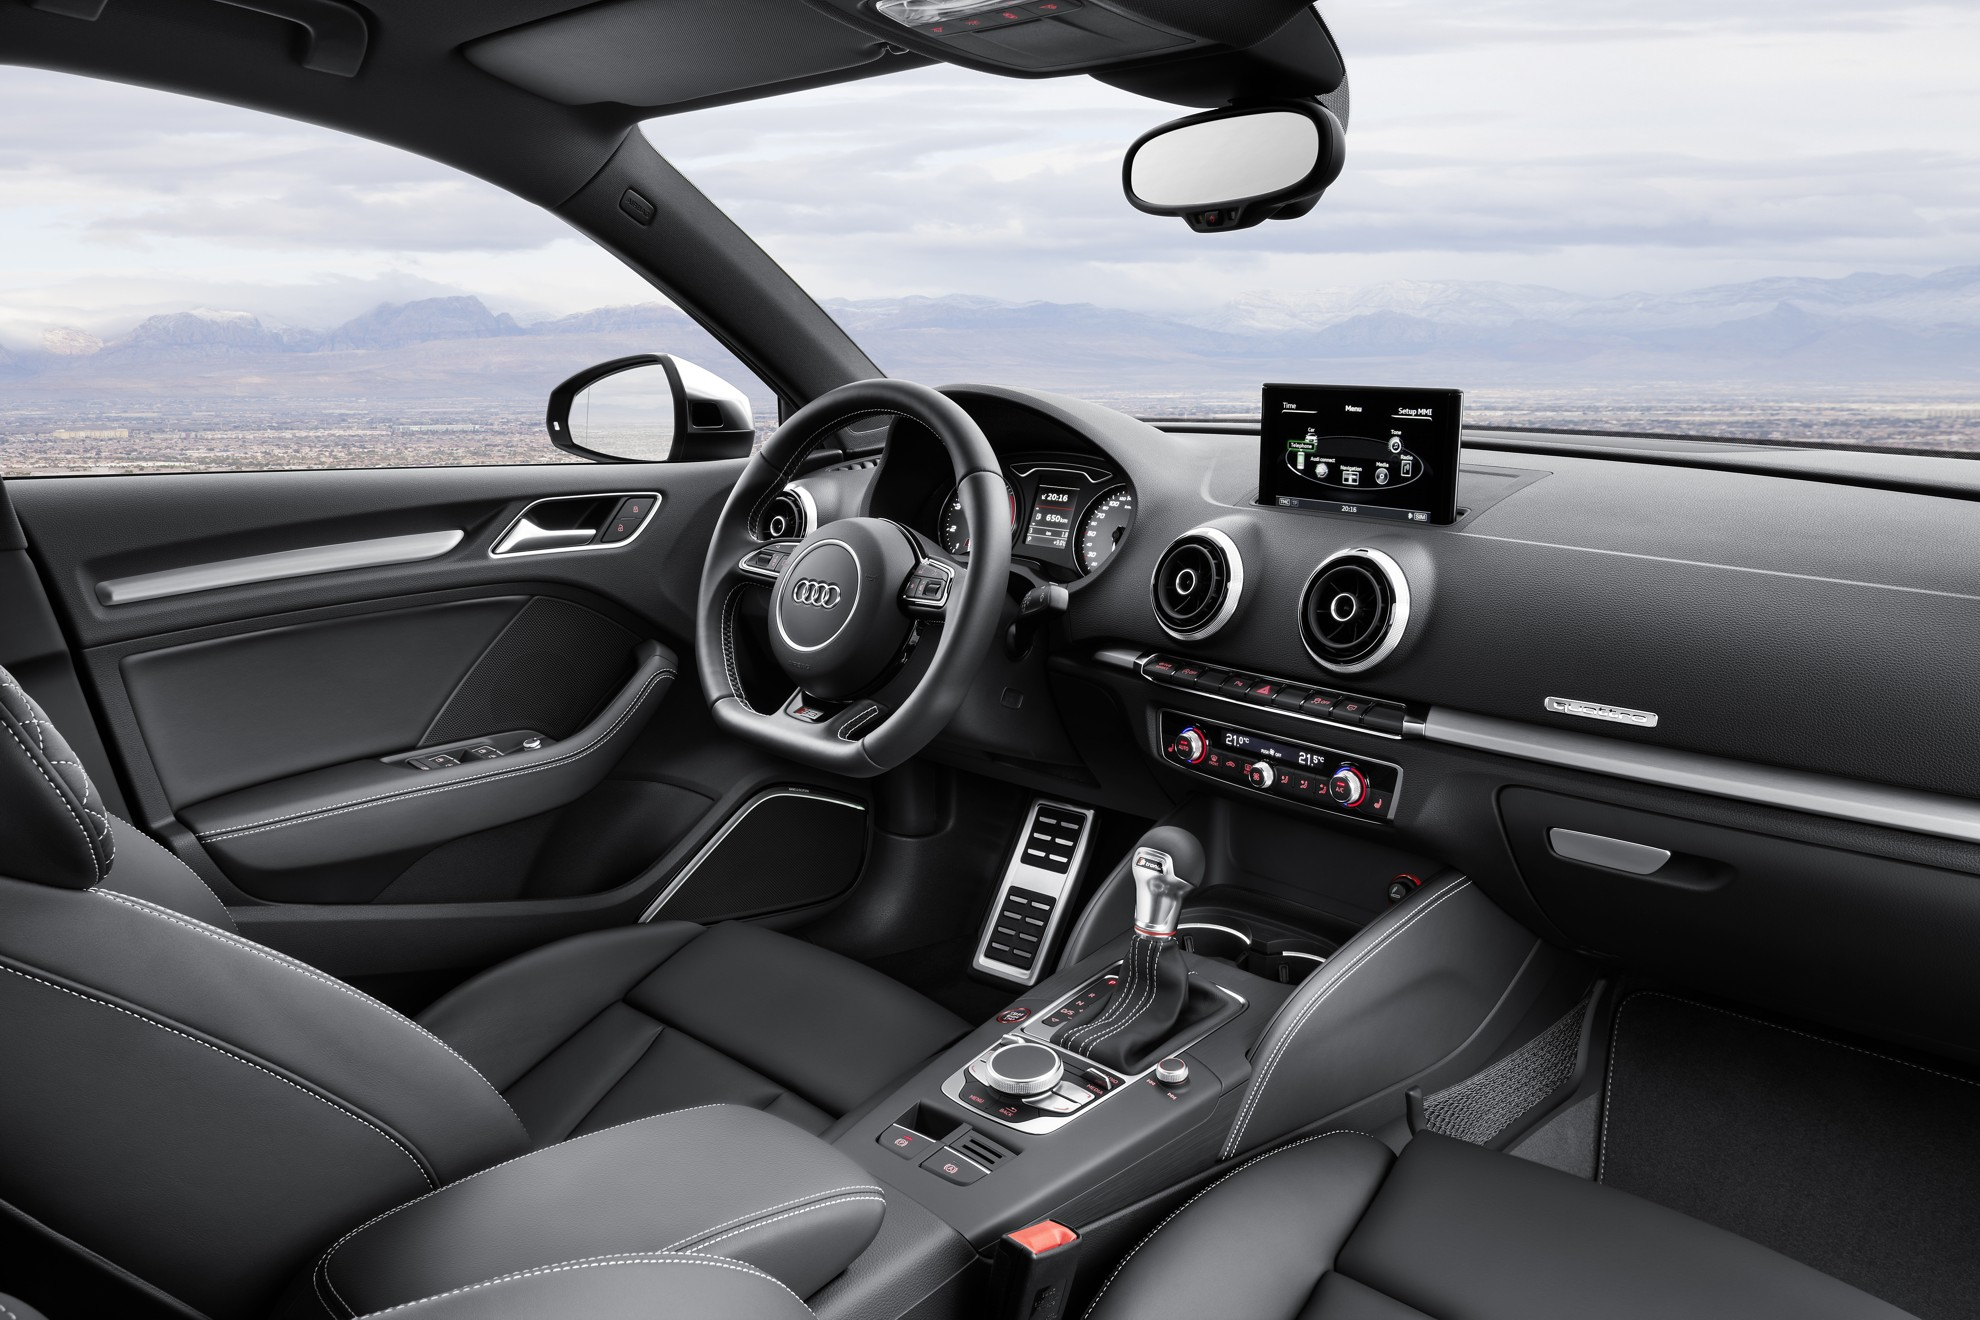 Audi introduces the all-new technologically advanced 2015 Audi A3